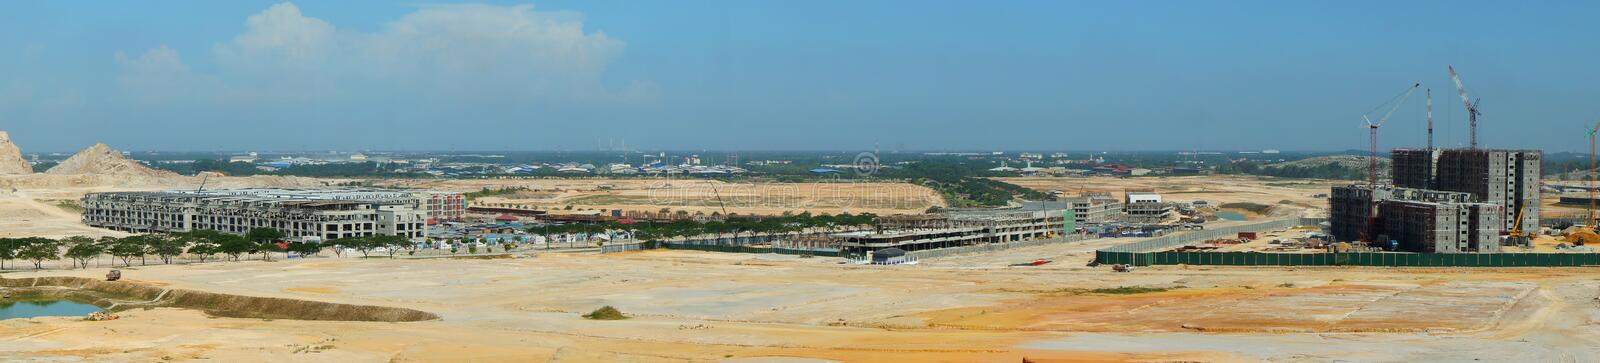 Panoramic view of construction site royalty free stock images